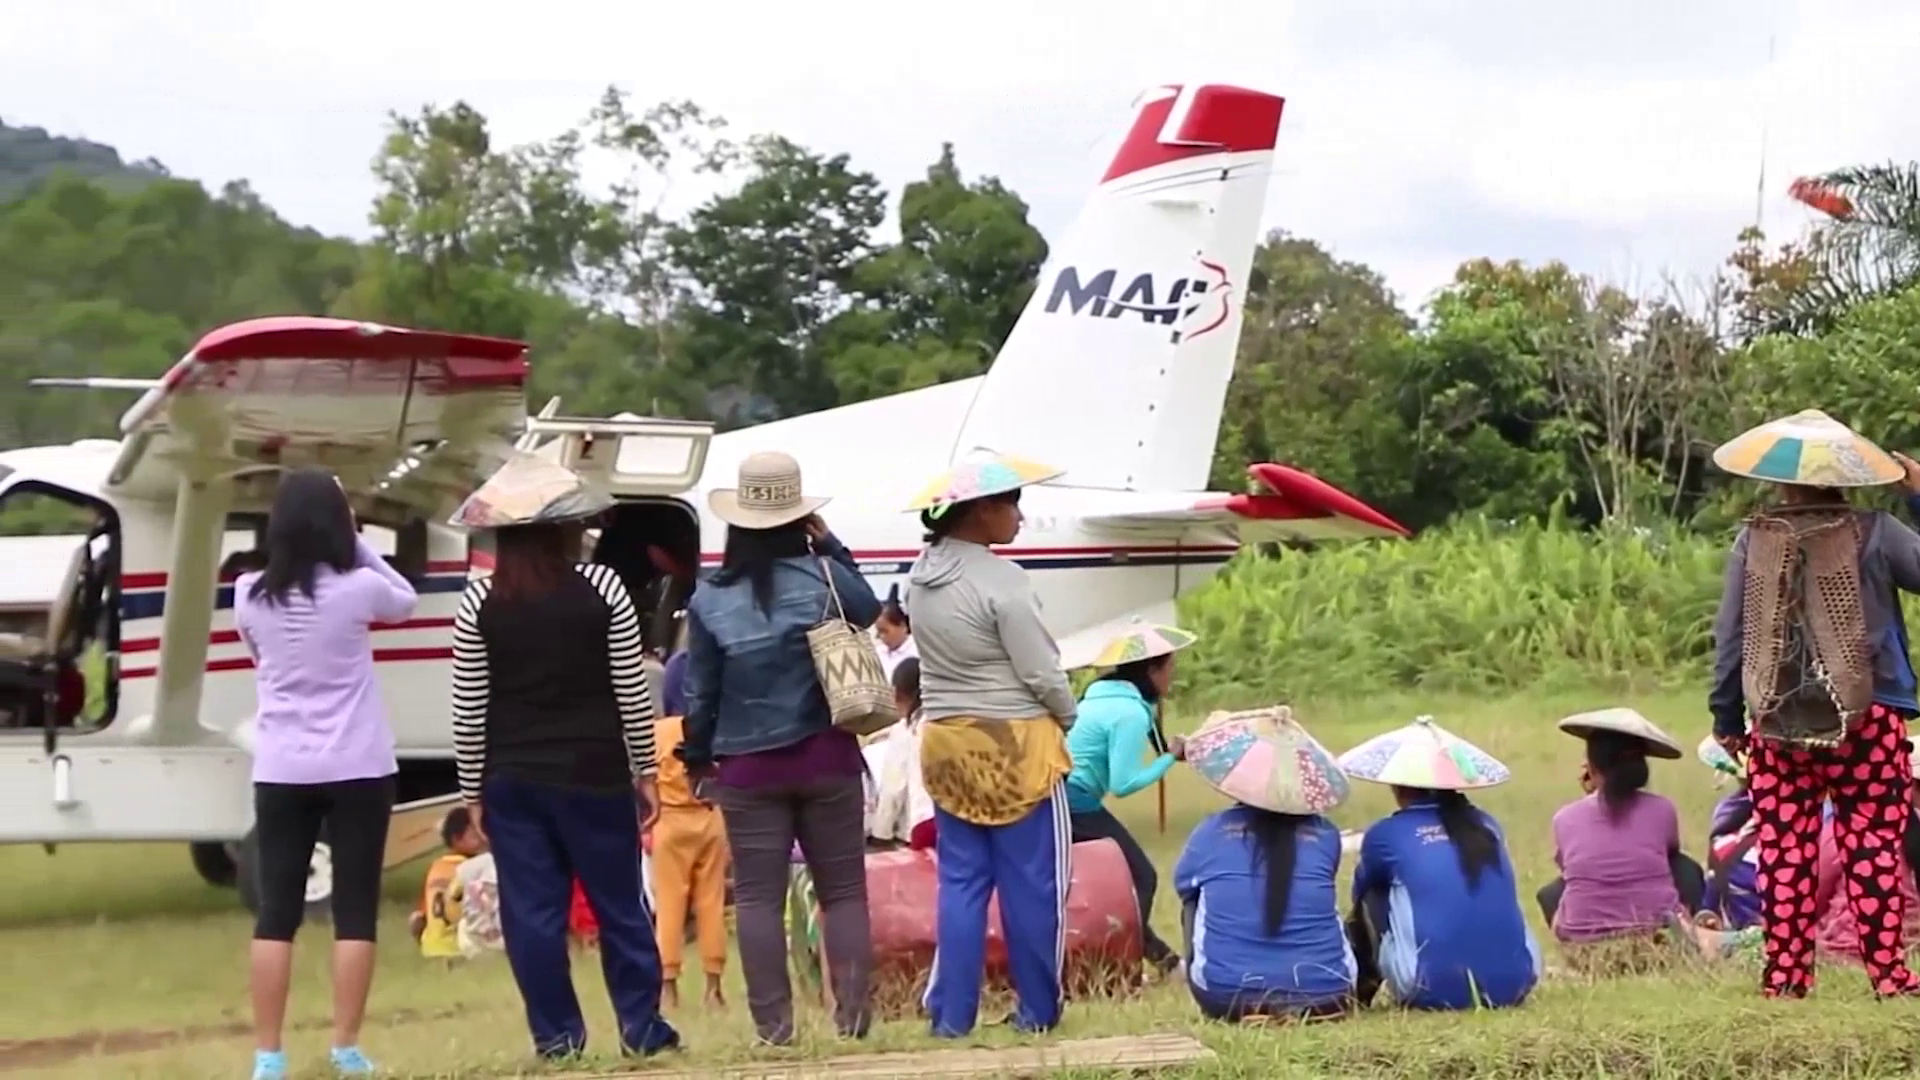 MAF Flying a group of woman in Kalimantan